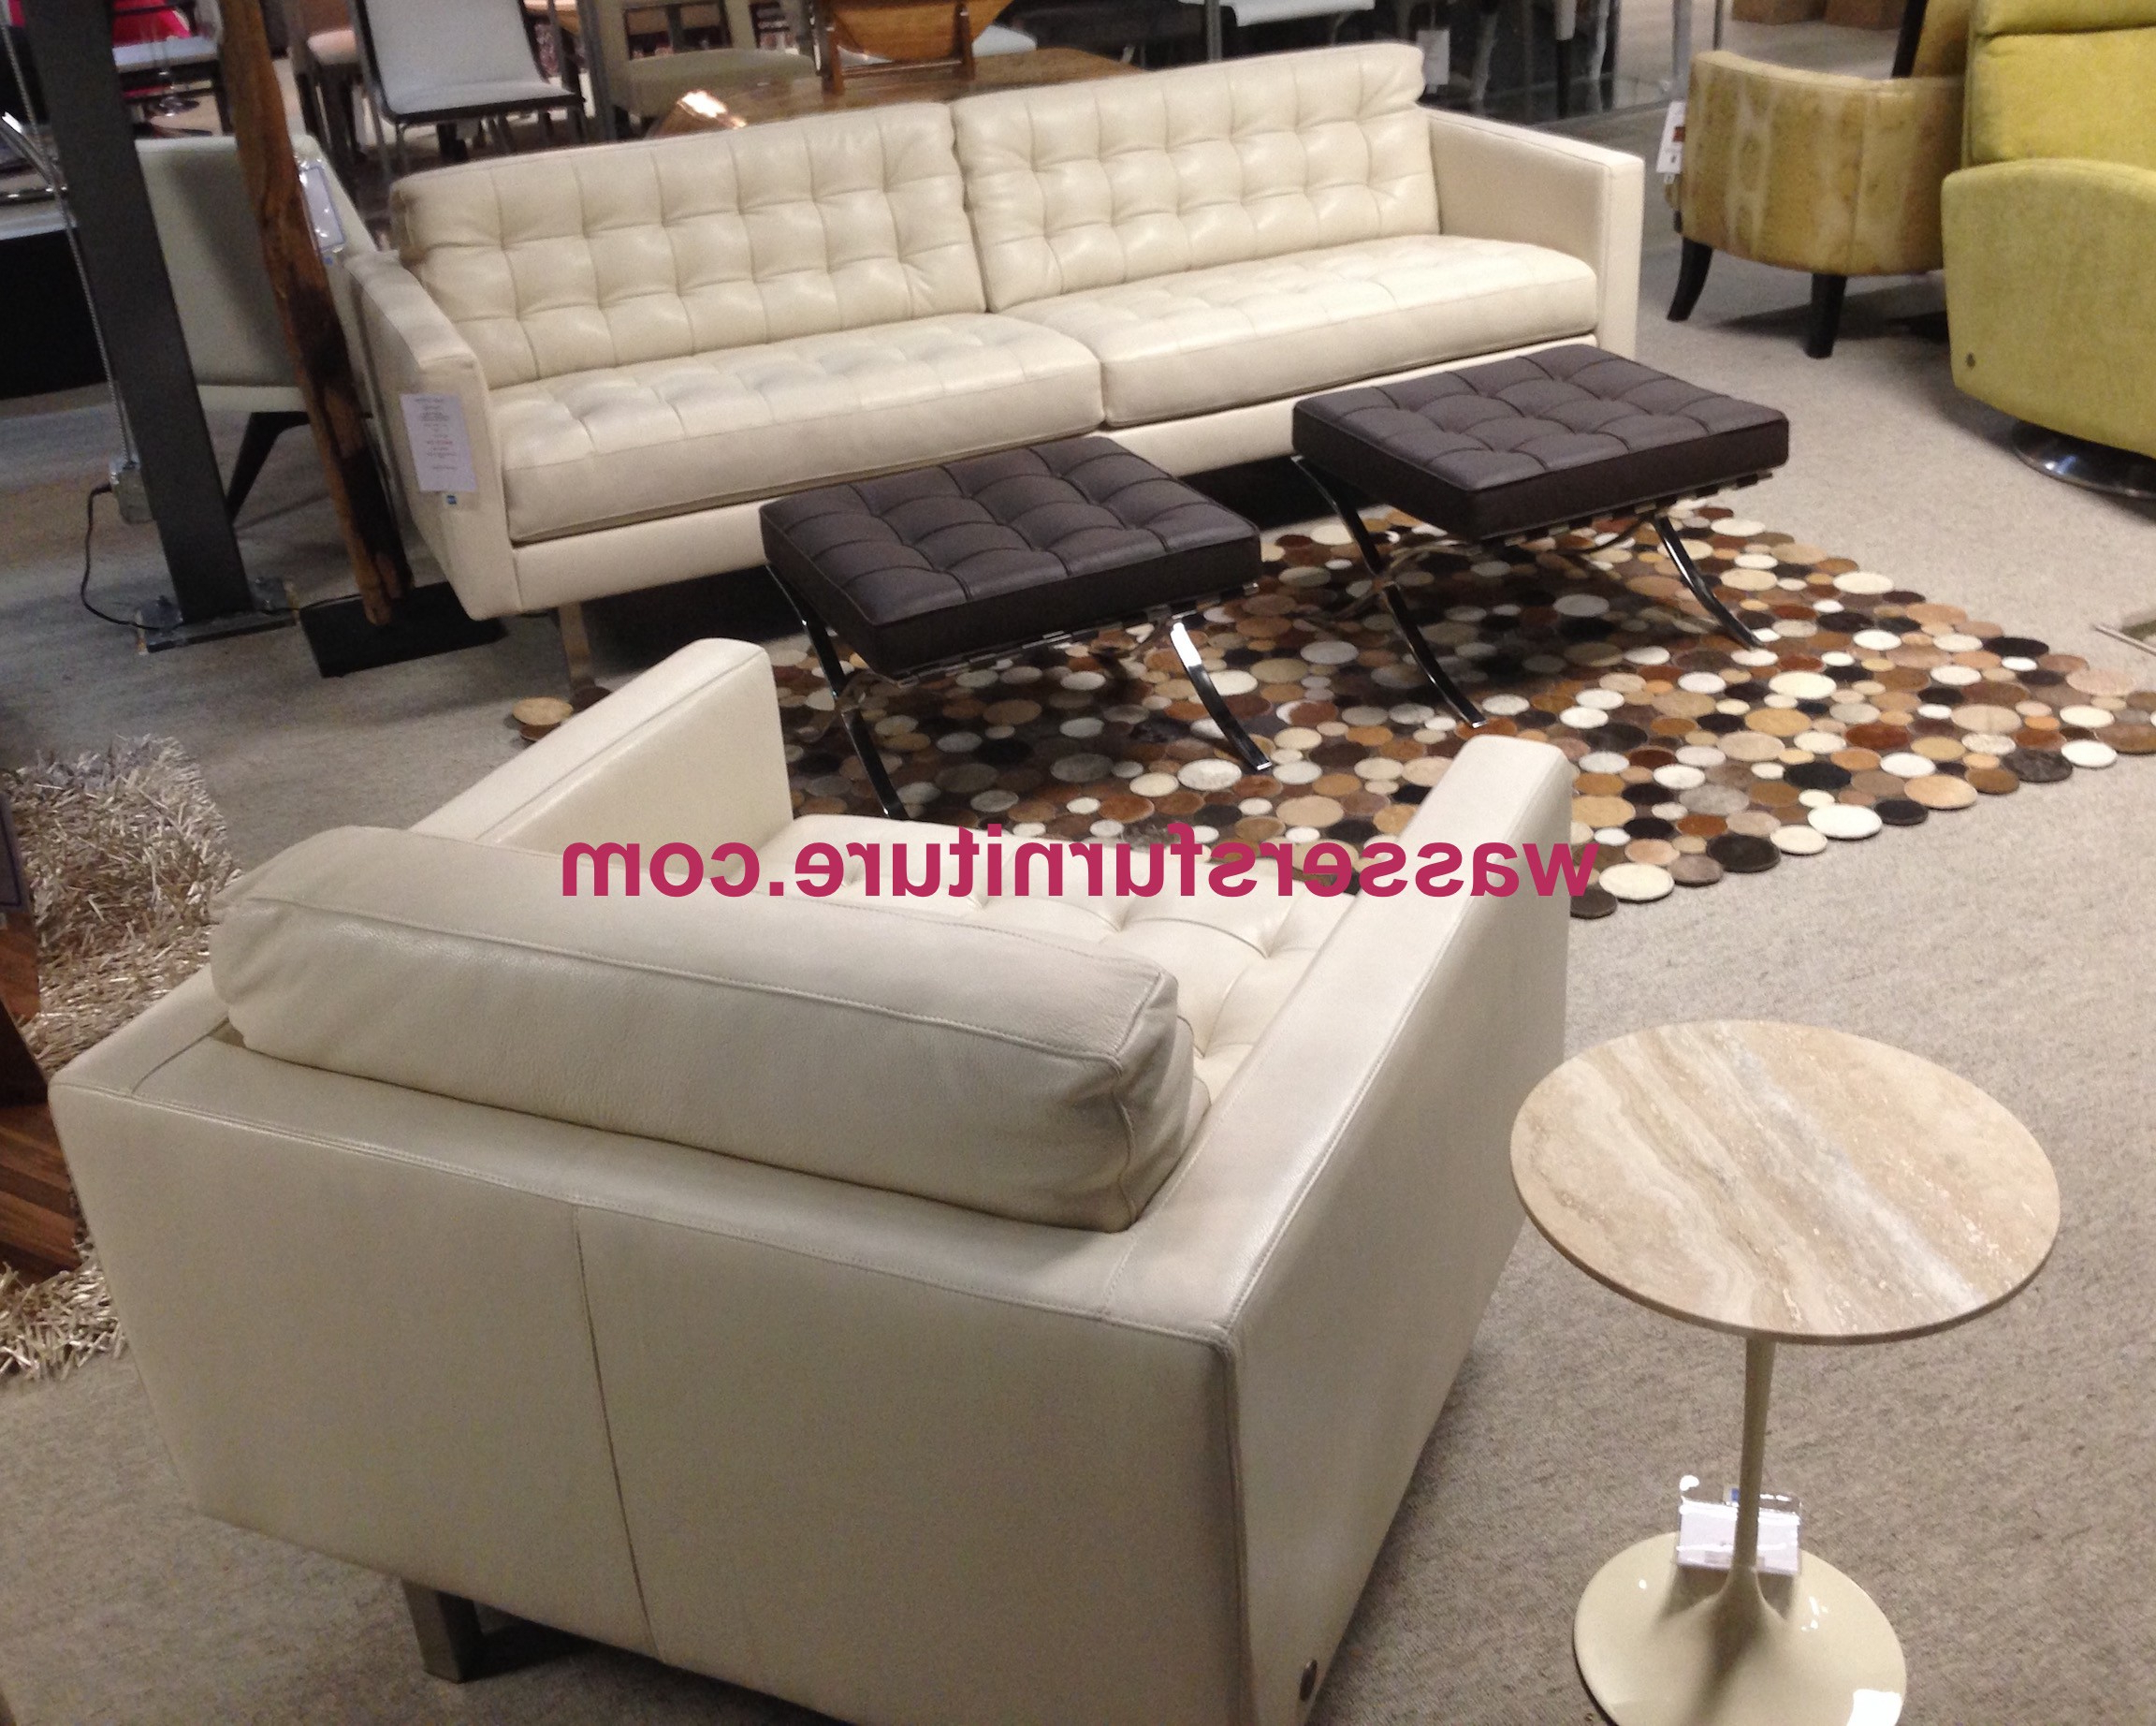 American Leather – Parker – Sofa – Bison White – Leather – In Stock! Intended For Well Liked Parker Sofa Chairs (View 3 of 20)